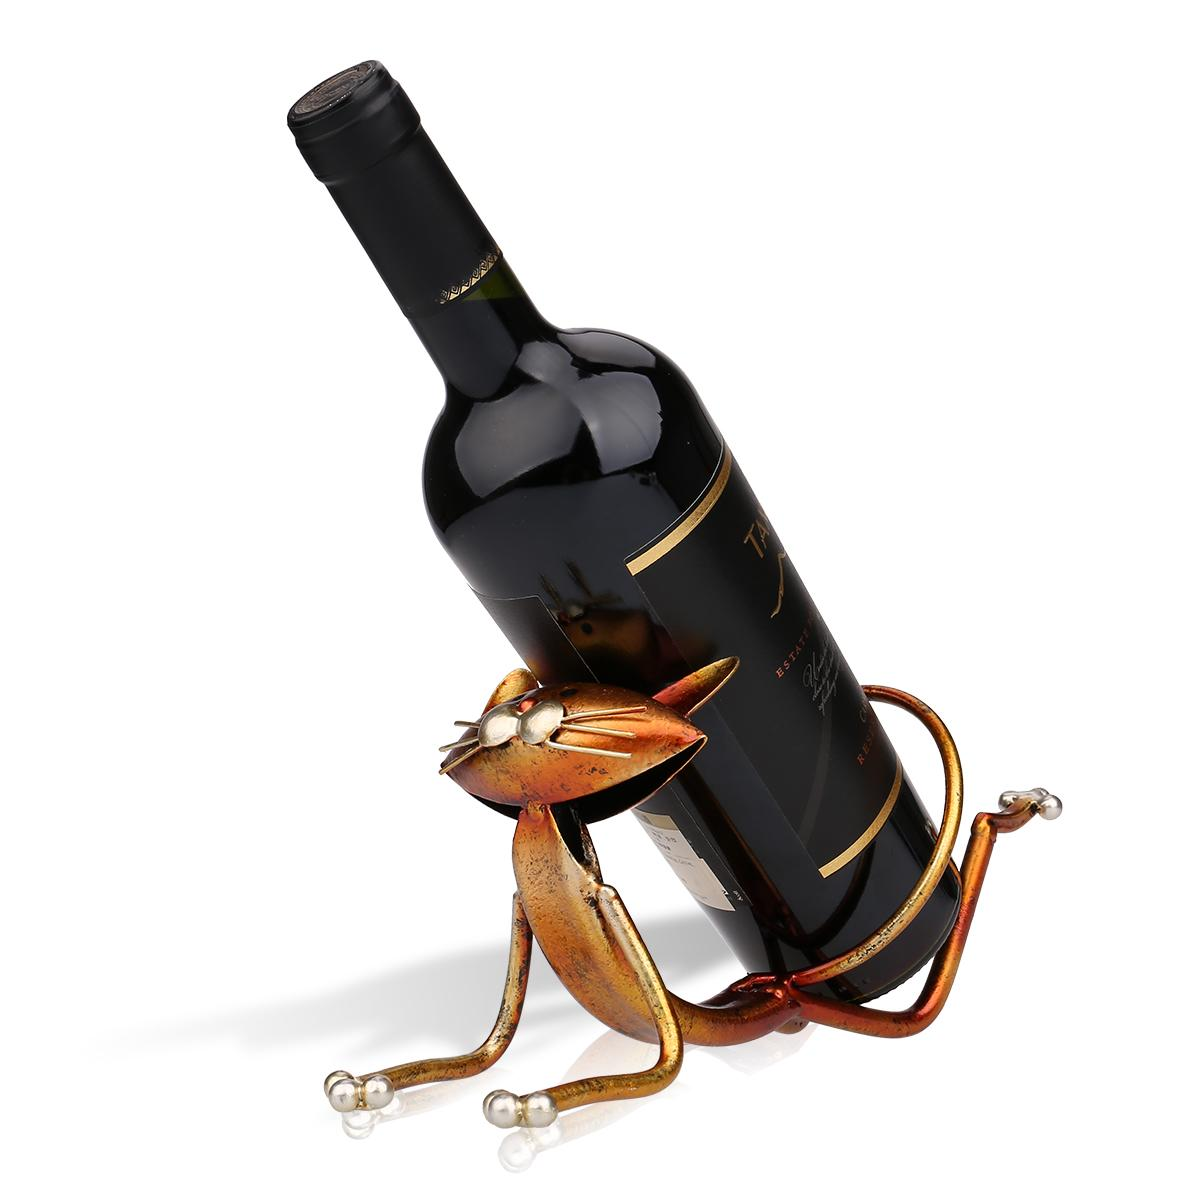 Bourgogne Cat - Wine Bottle Holder - Conscientnetworks